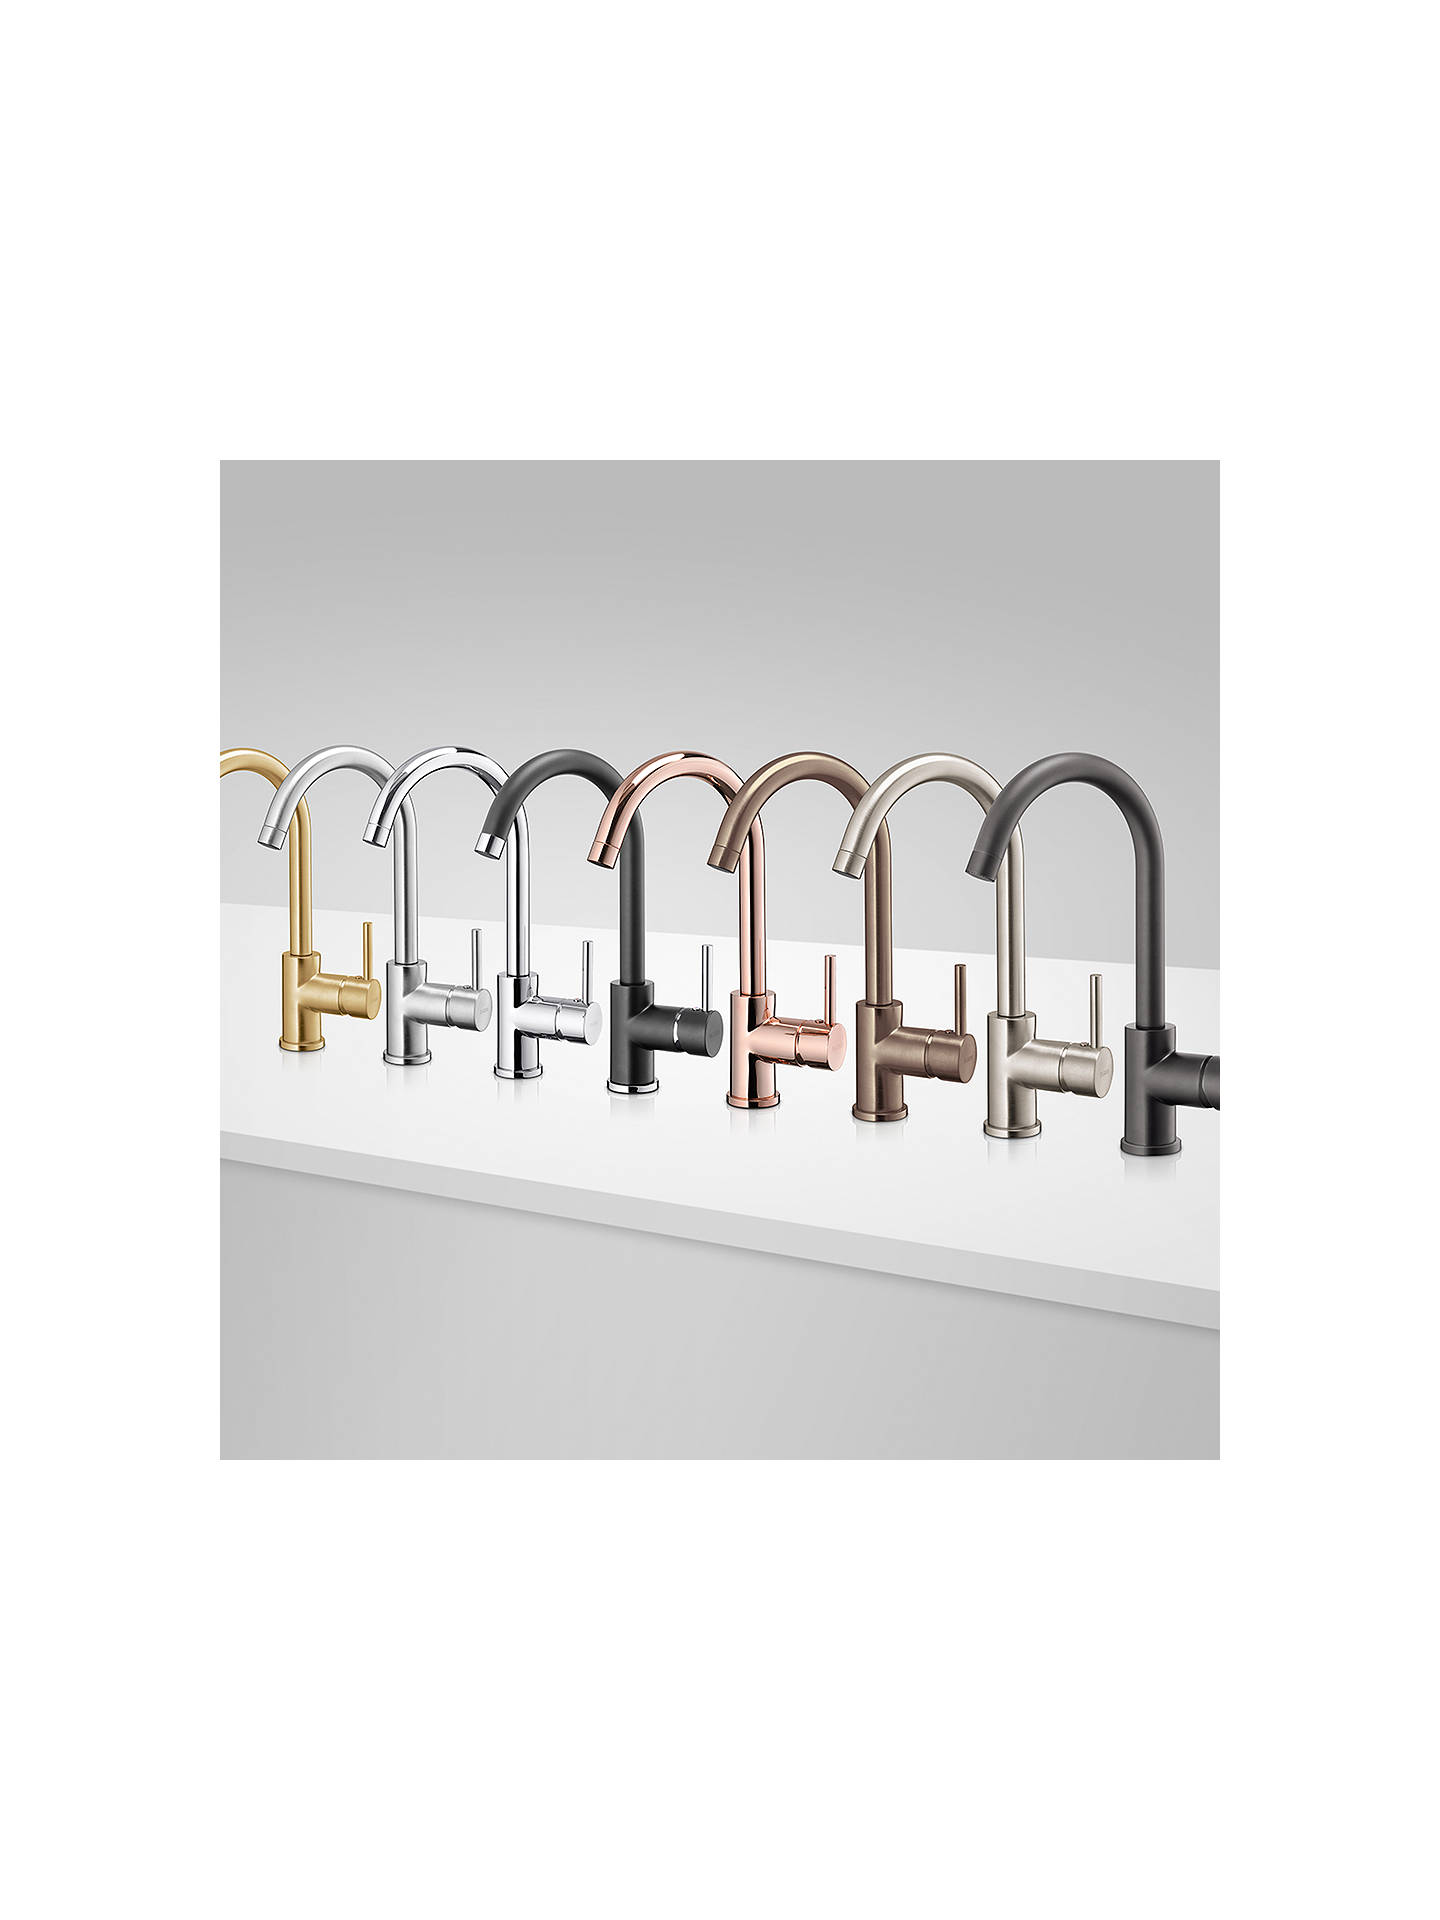 BuyBlanco Envoy Single Lever Monobloc Mixer Kitchen Tap, Chrome Online at johnlewis.com